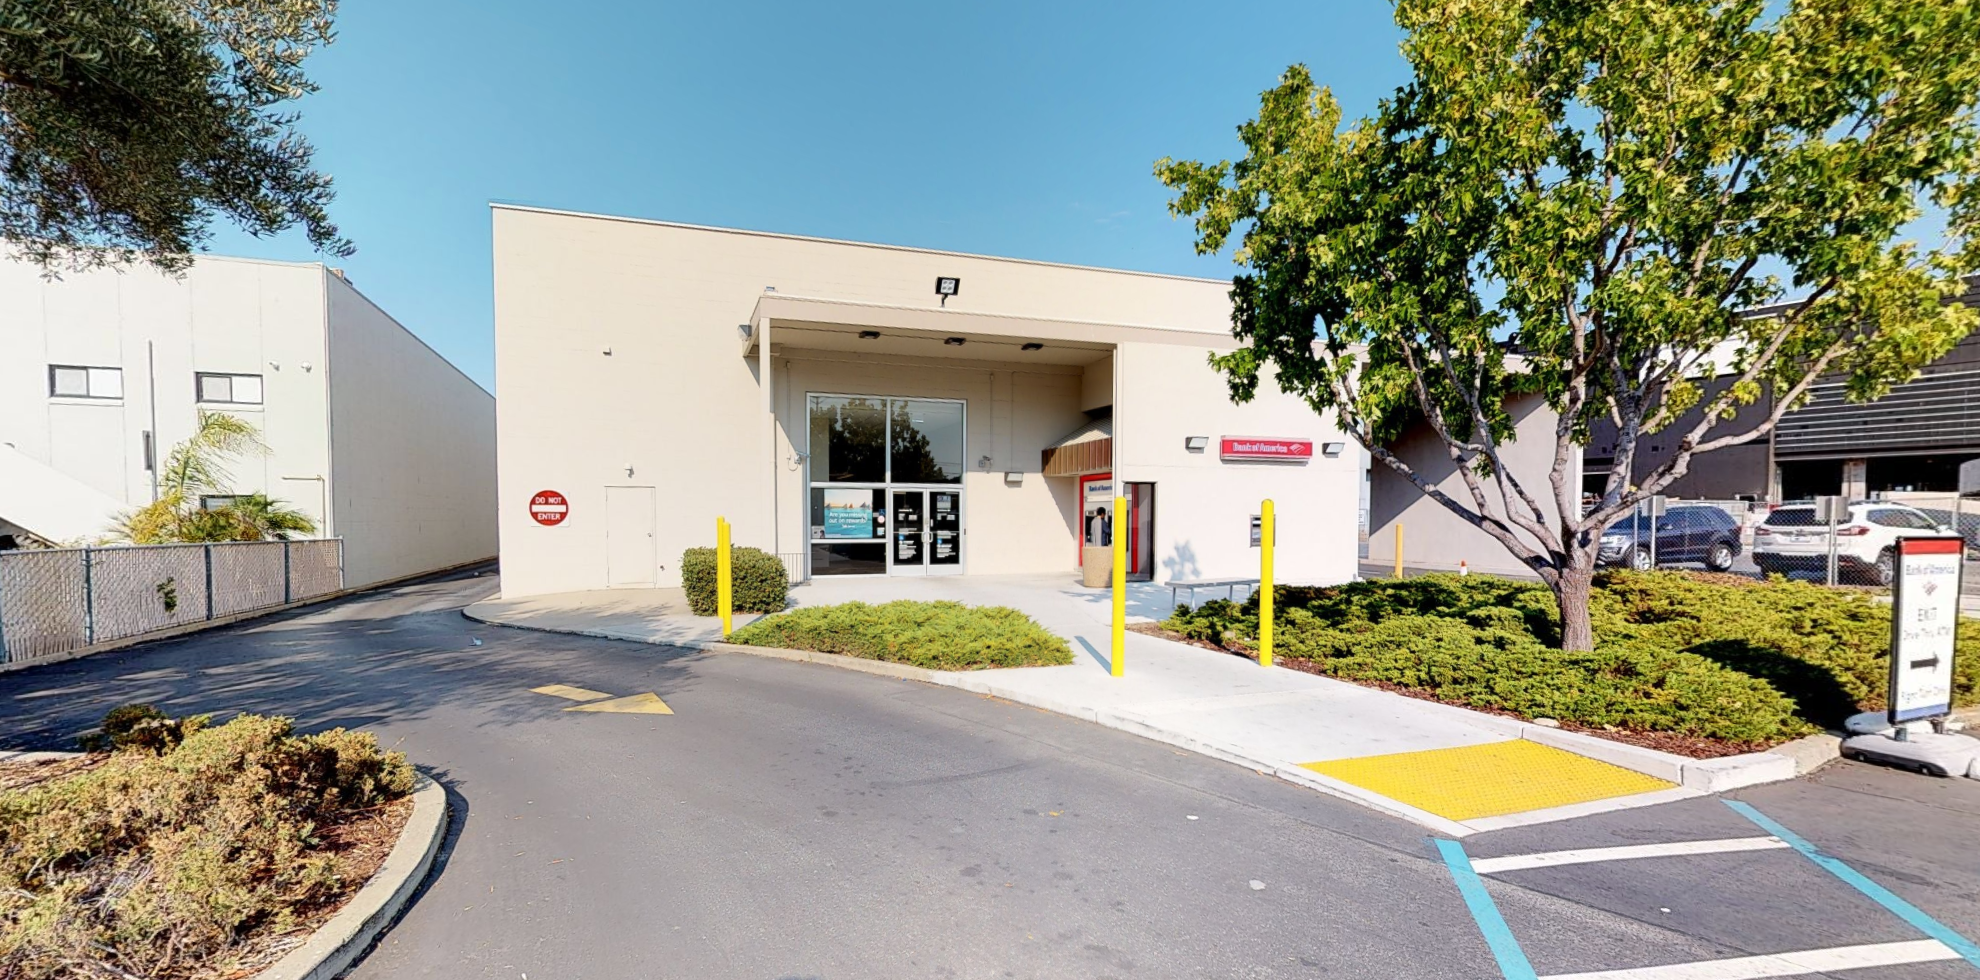 Bank of America financial center with drive-thru ATM | 2900 S El Camino Real, San Mateo, CA 94403